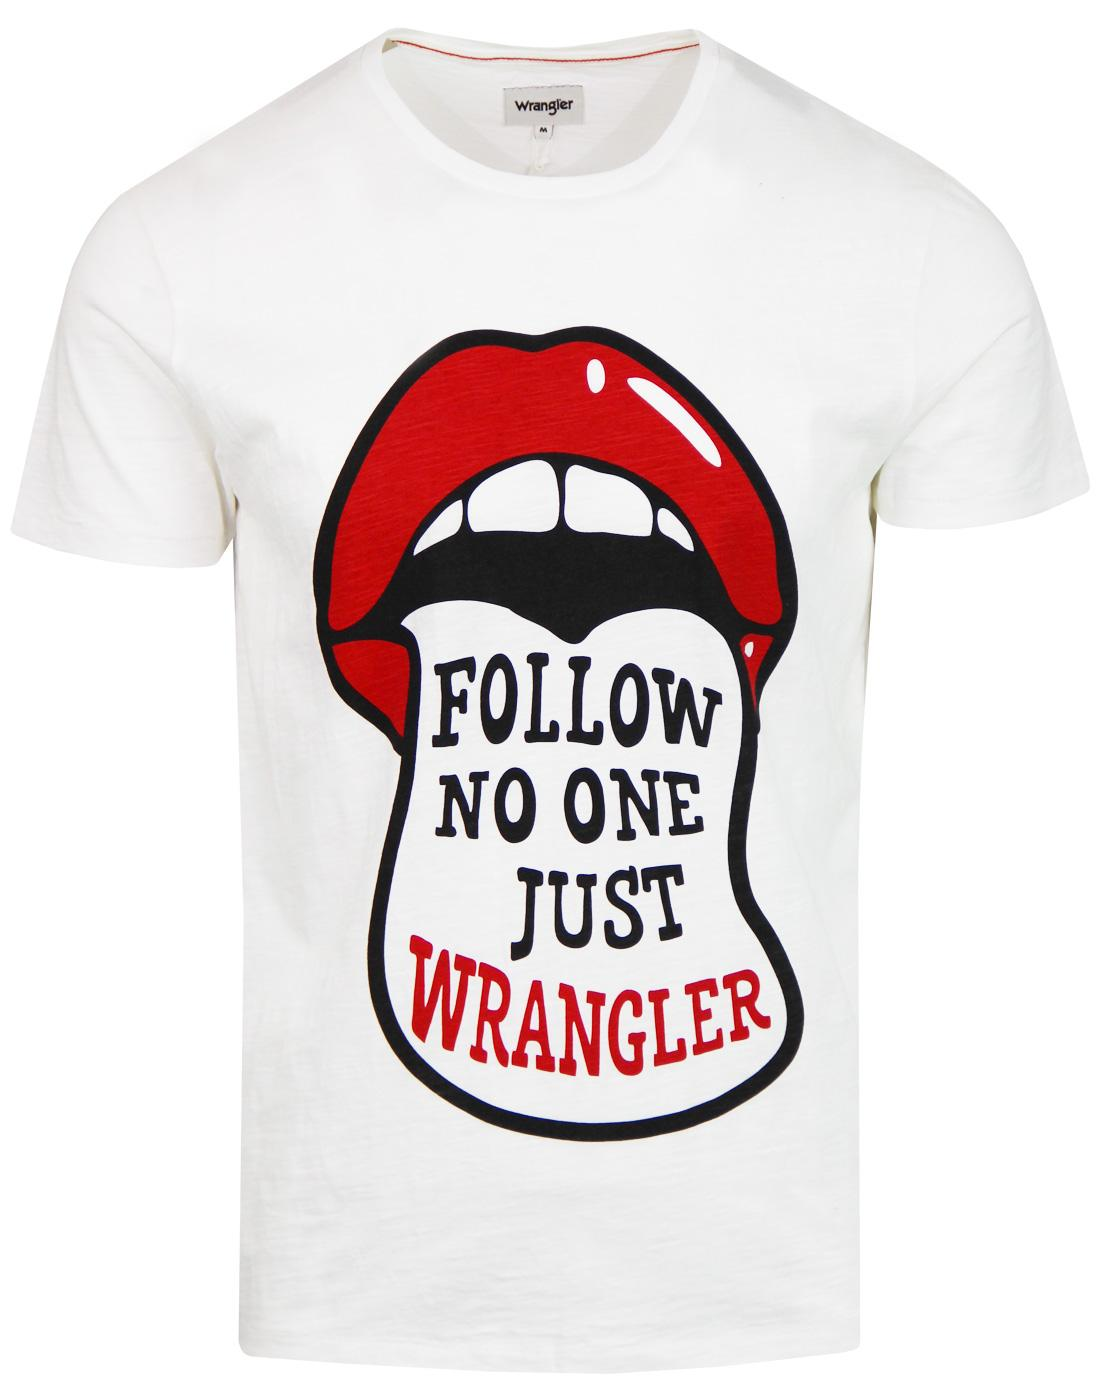 Follow No One Just WRANGLER Retro Festival T-shirt